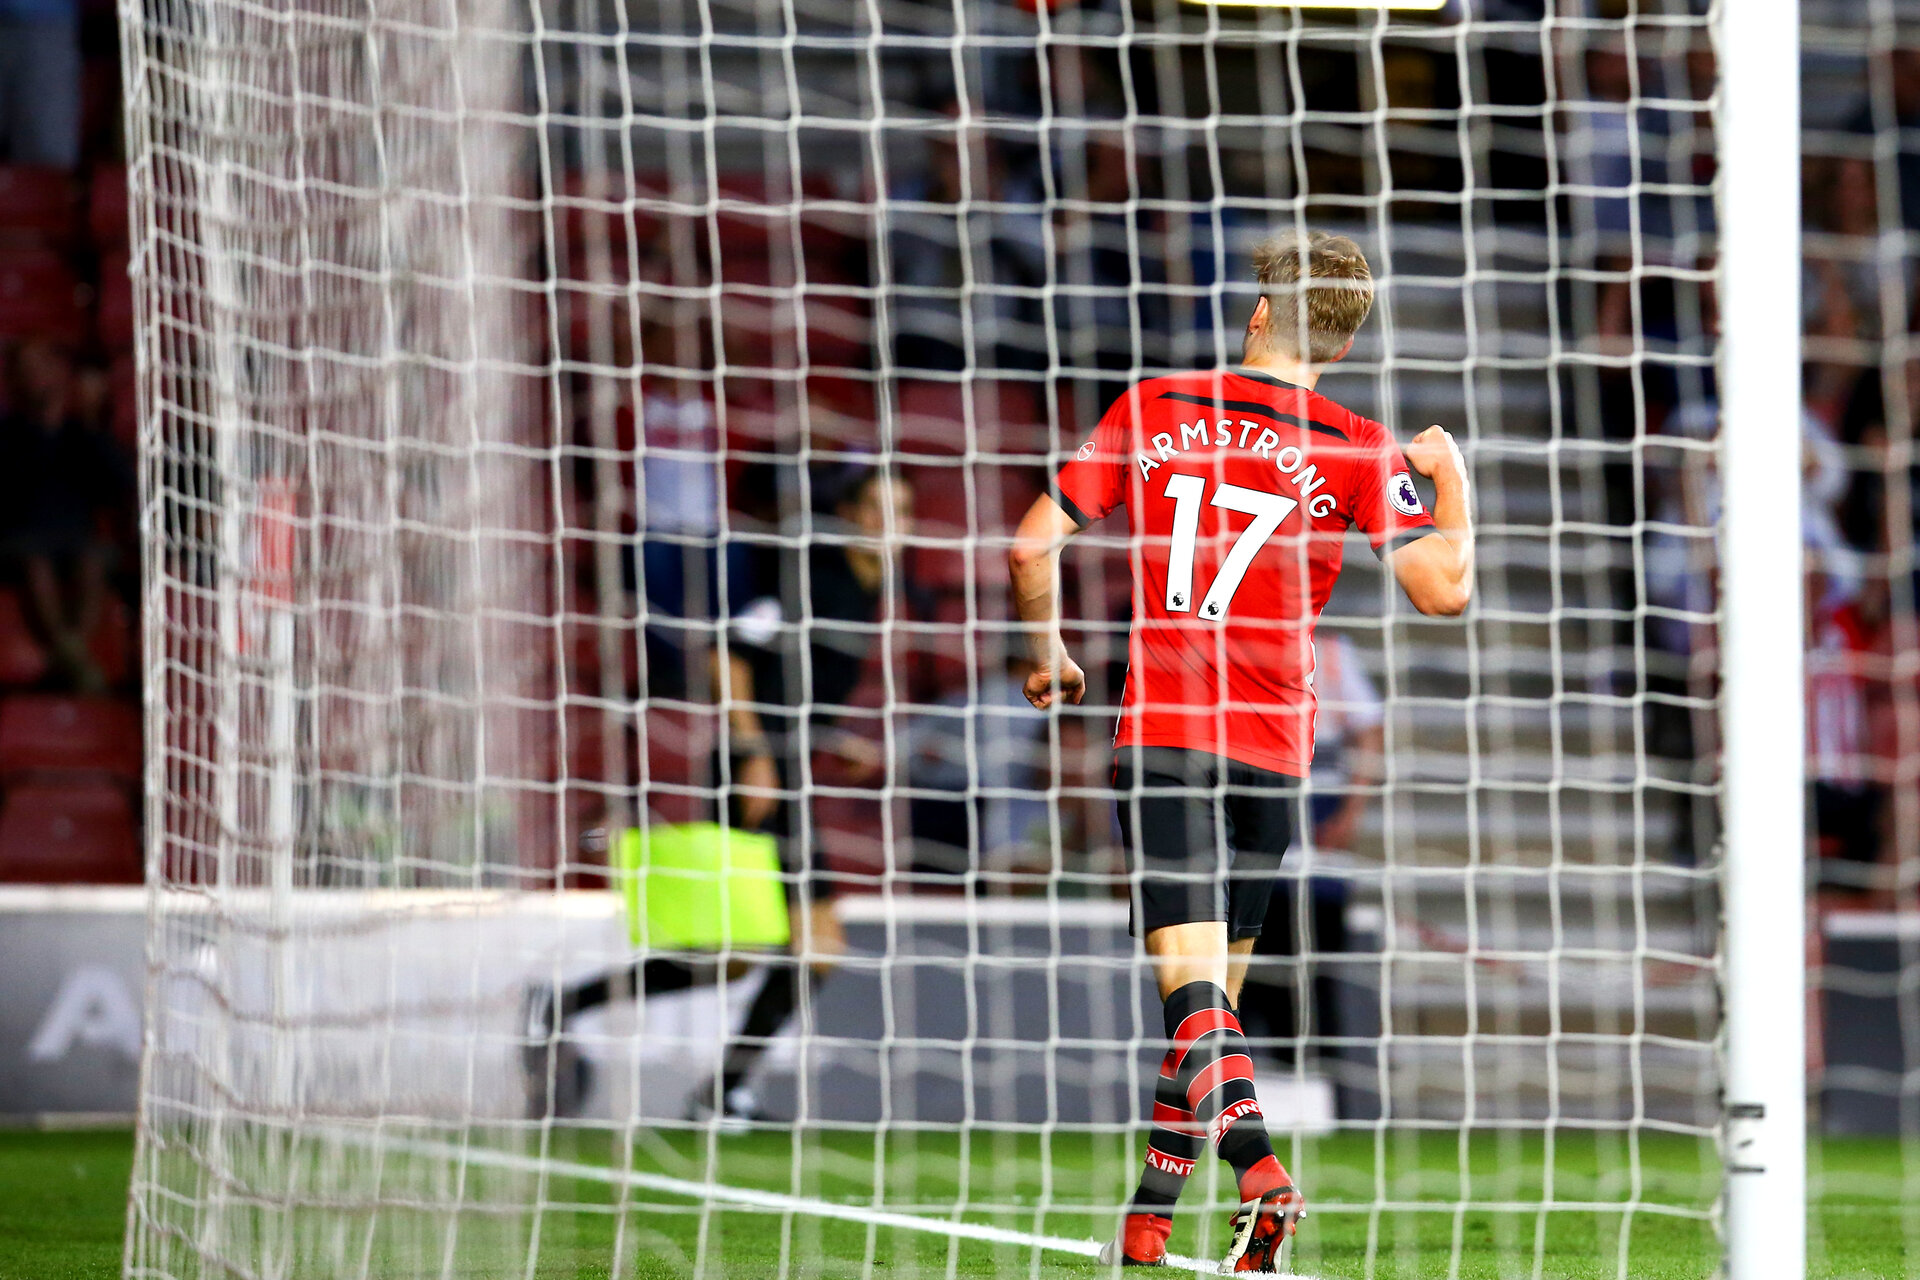 SOUTHAMPTON, ENGLAND - AUGUST 01: Stuart Armstrong scores for Southampton FC during the Pre-Season friendly match between Southampton FC and Celta Vigo pictured at St Mary's Stadium on August 1, 2018 in Southampton, England. (Photo by James Bridle - Southampton FC/Southampton FC via Getty Images)